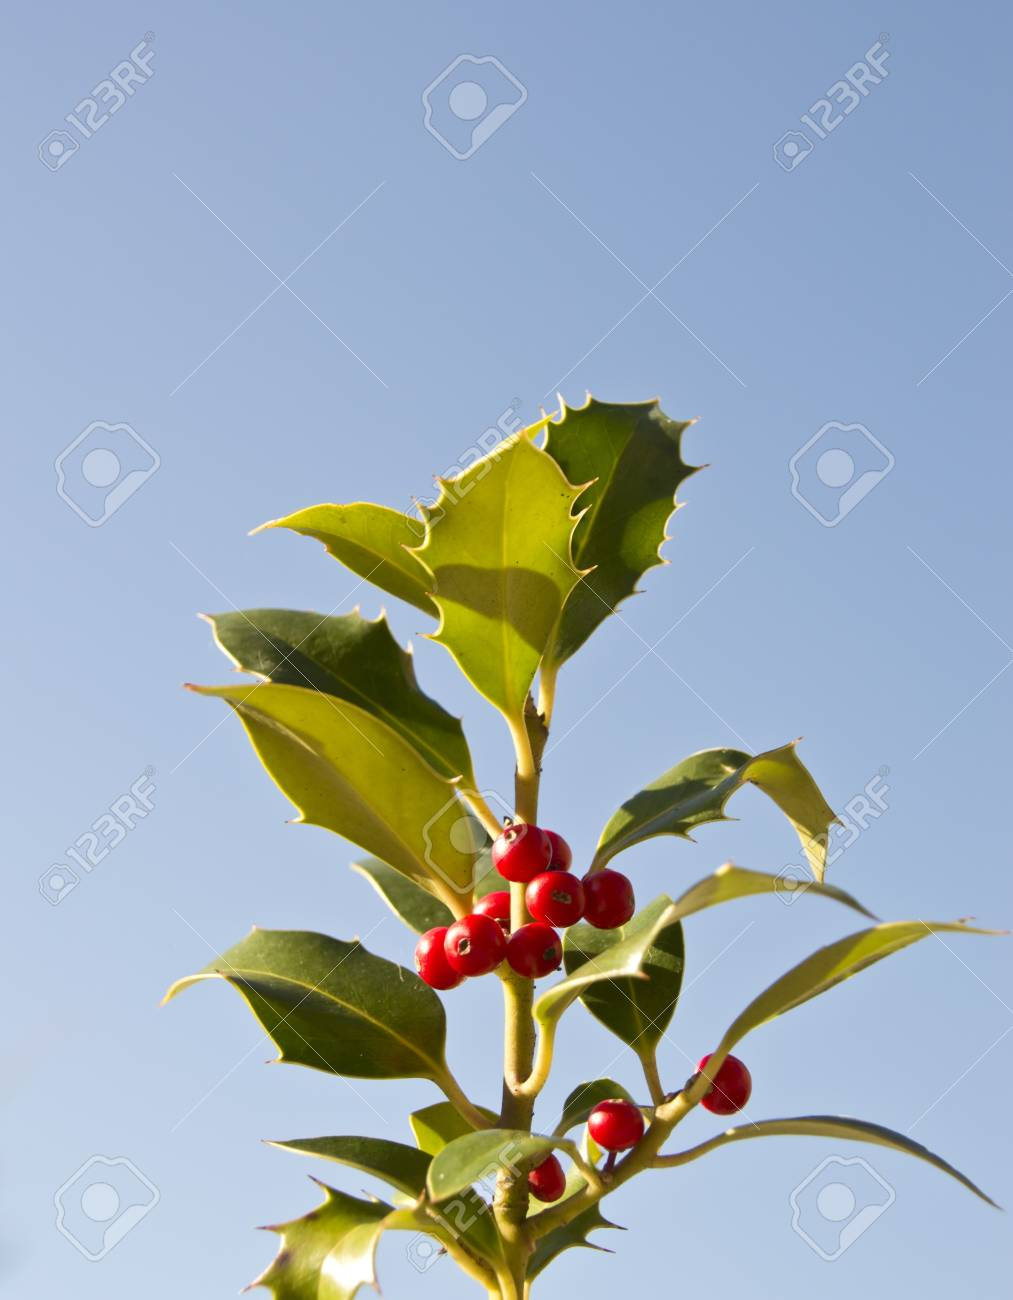 berries on holly, isolated against blue sky Stock Photo - 16313623